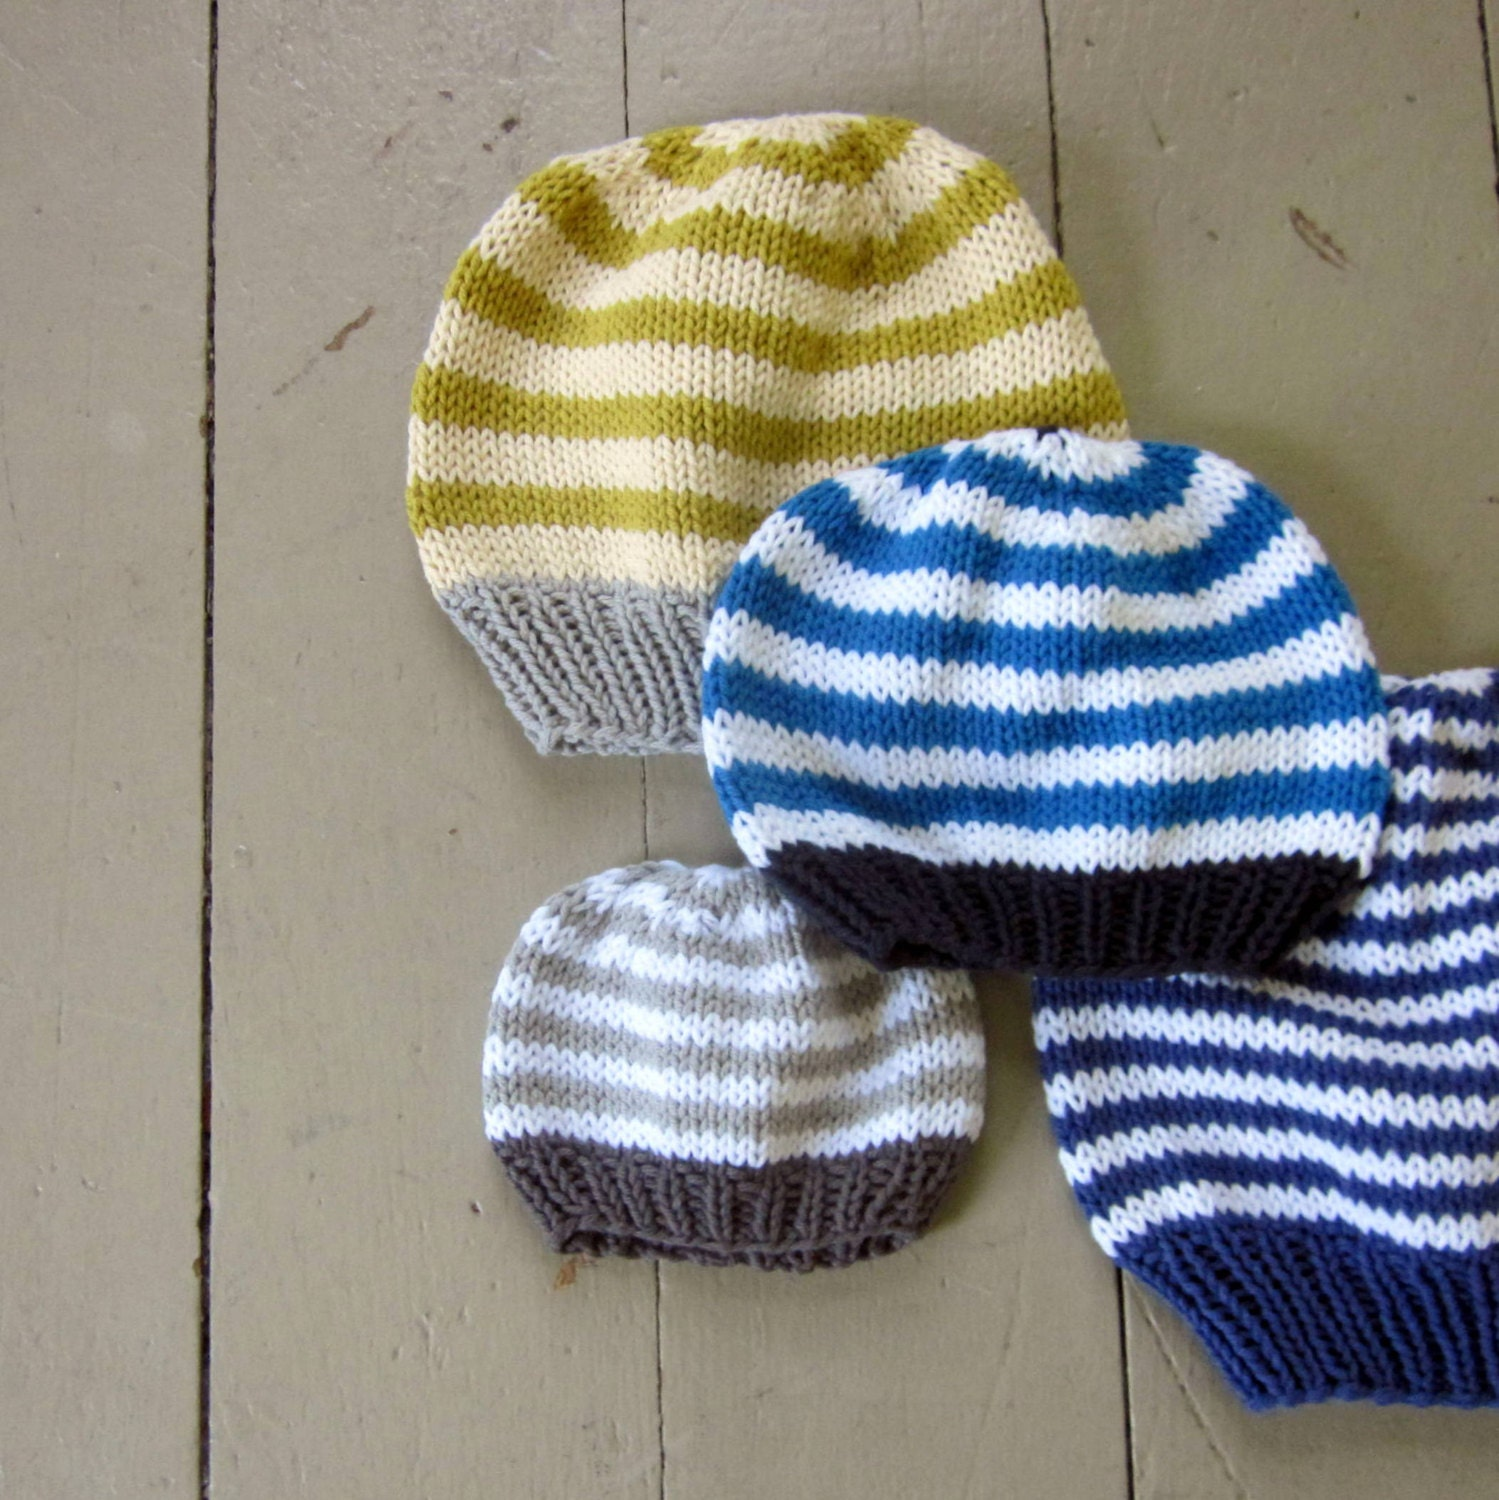 Knitted Baby Boy Hat Patterns : Pattern, basic hat knitting pattern, PDF knitted hat pattern: newborn, baby, ...